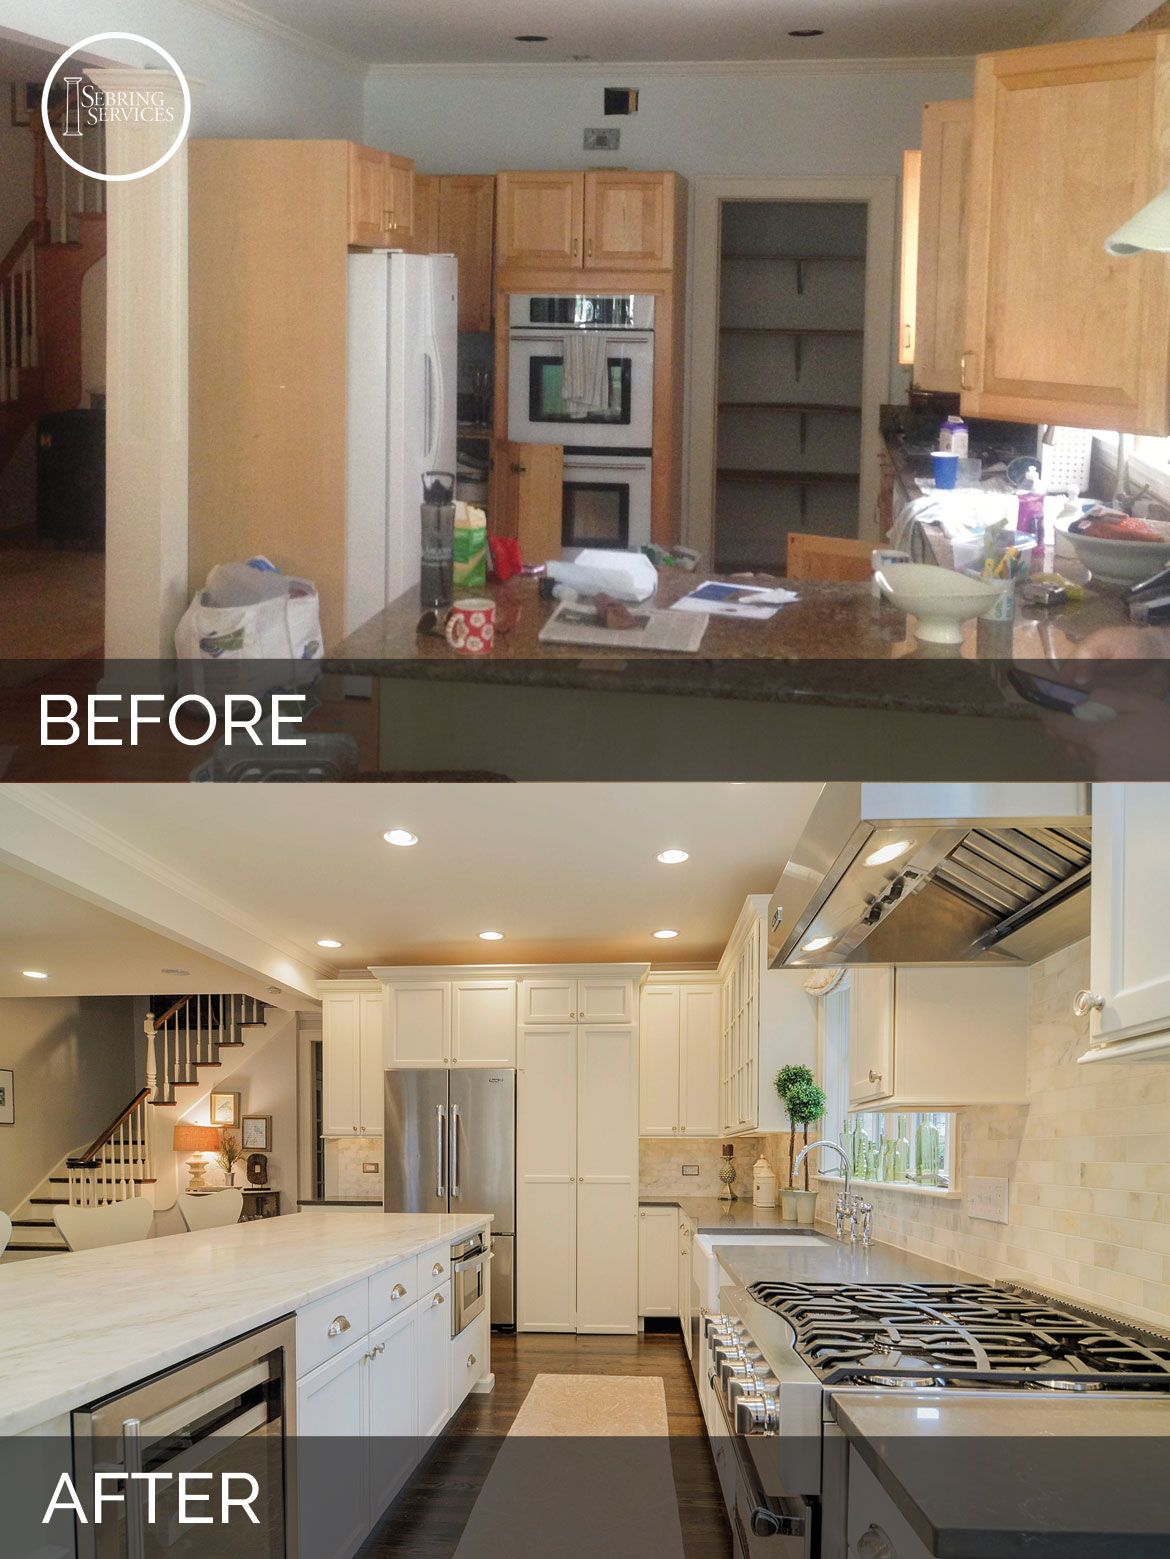 Ben ellen 39 s kitchen before after pictures in 2019 - Living room renovation before and after ...